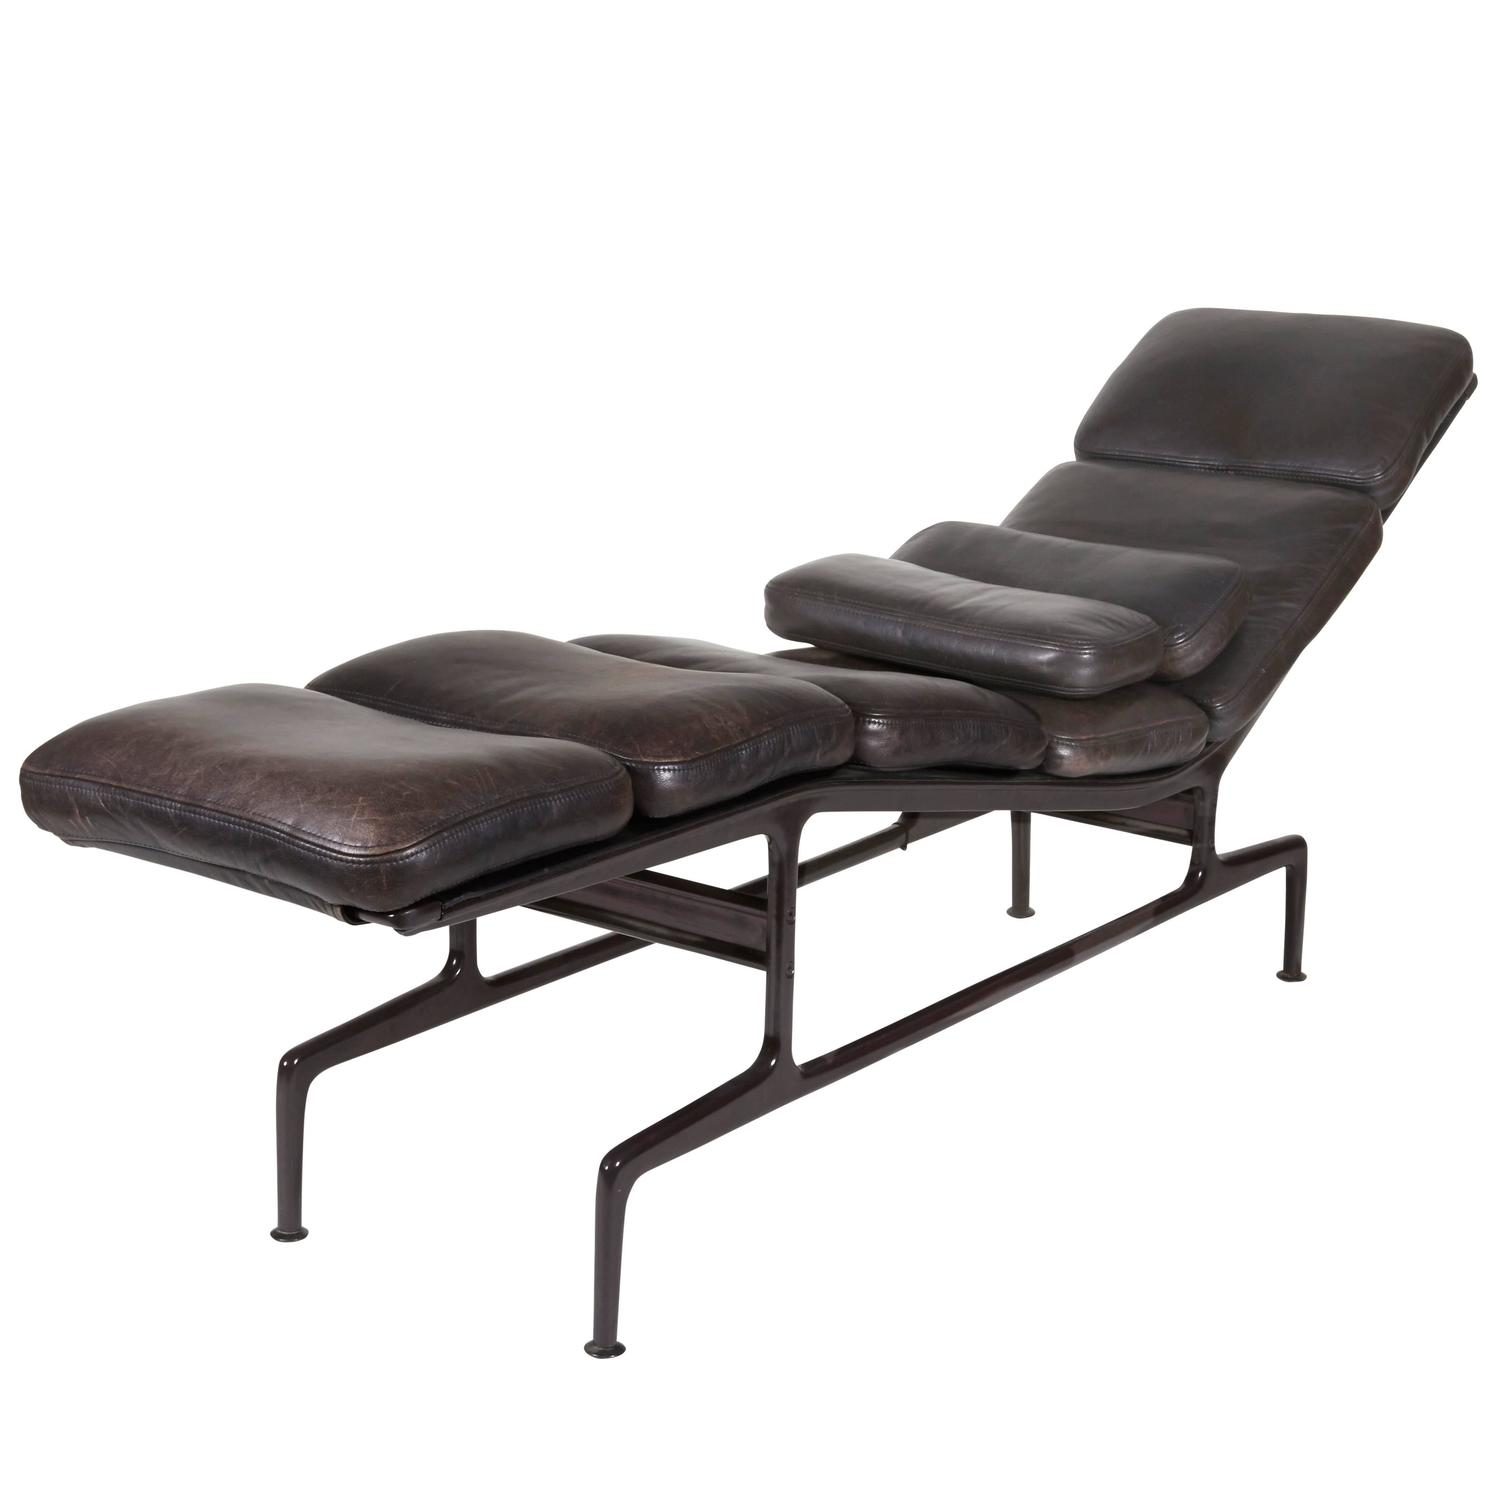 Billy wilder chaise by charles and ray eames for sale at for Chaise imitation charles eames